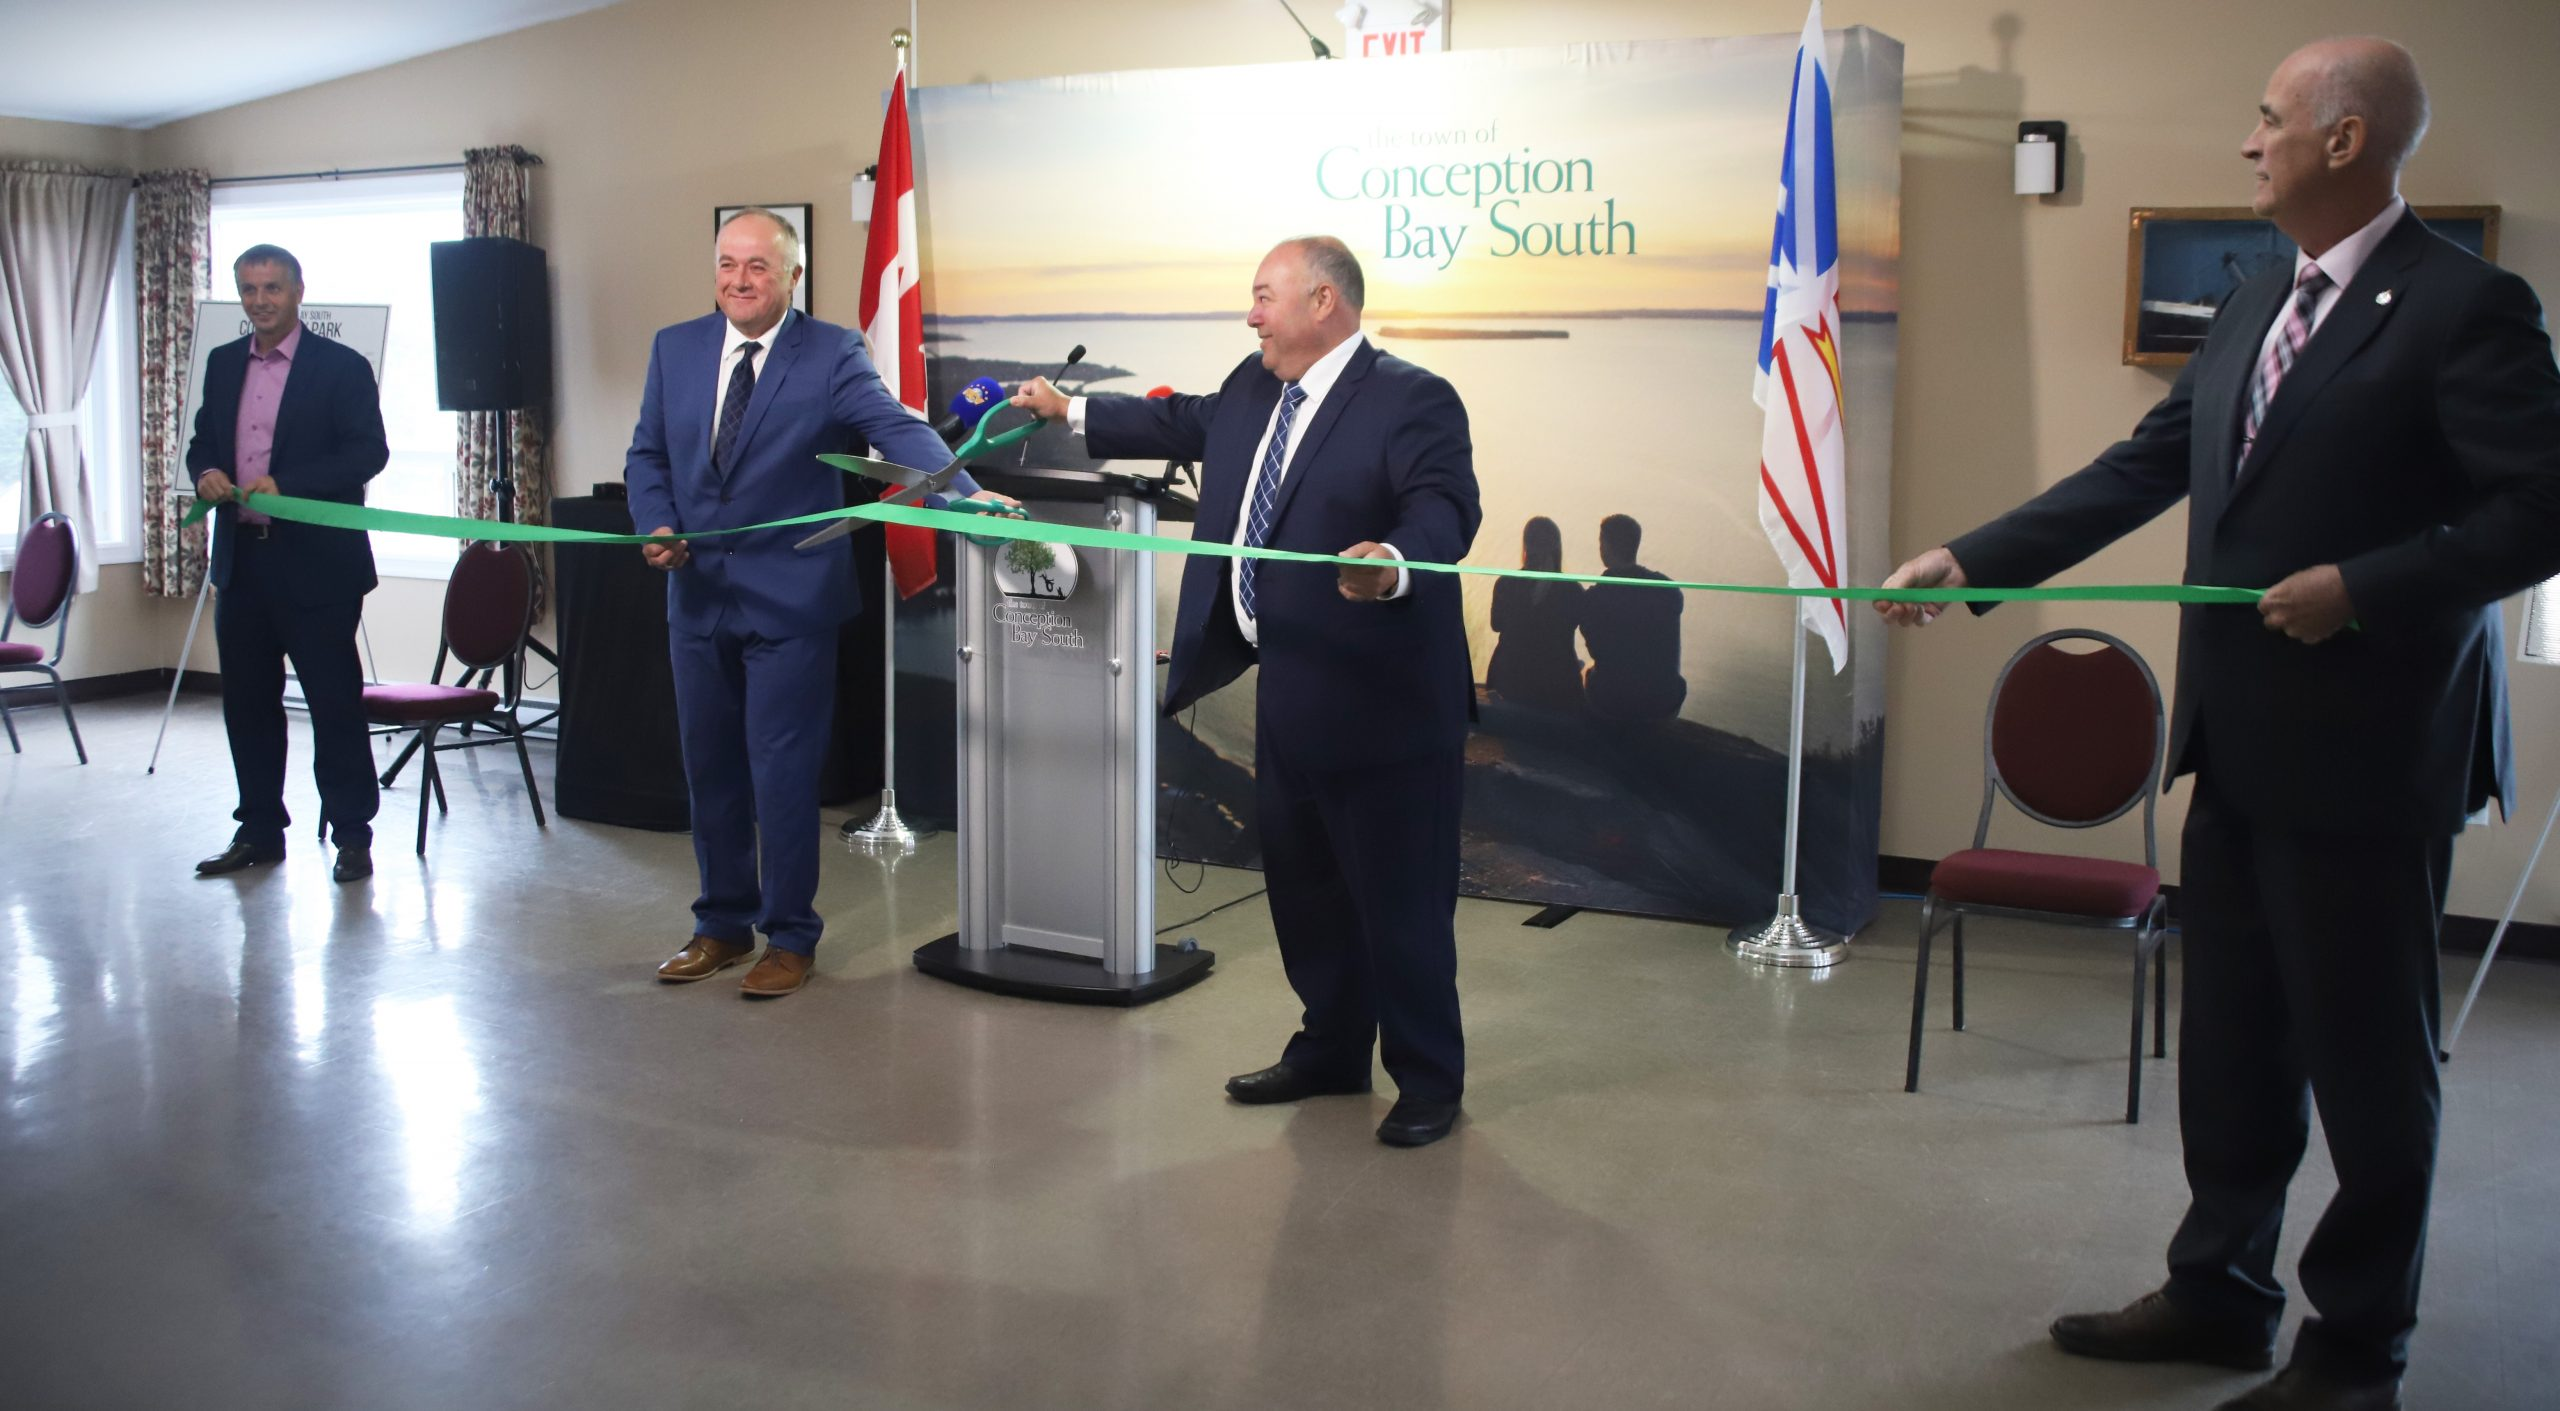 Conception Bay South receives funding towards its new Community Park